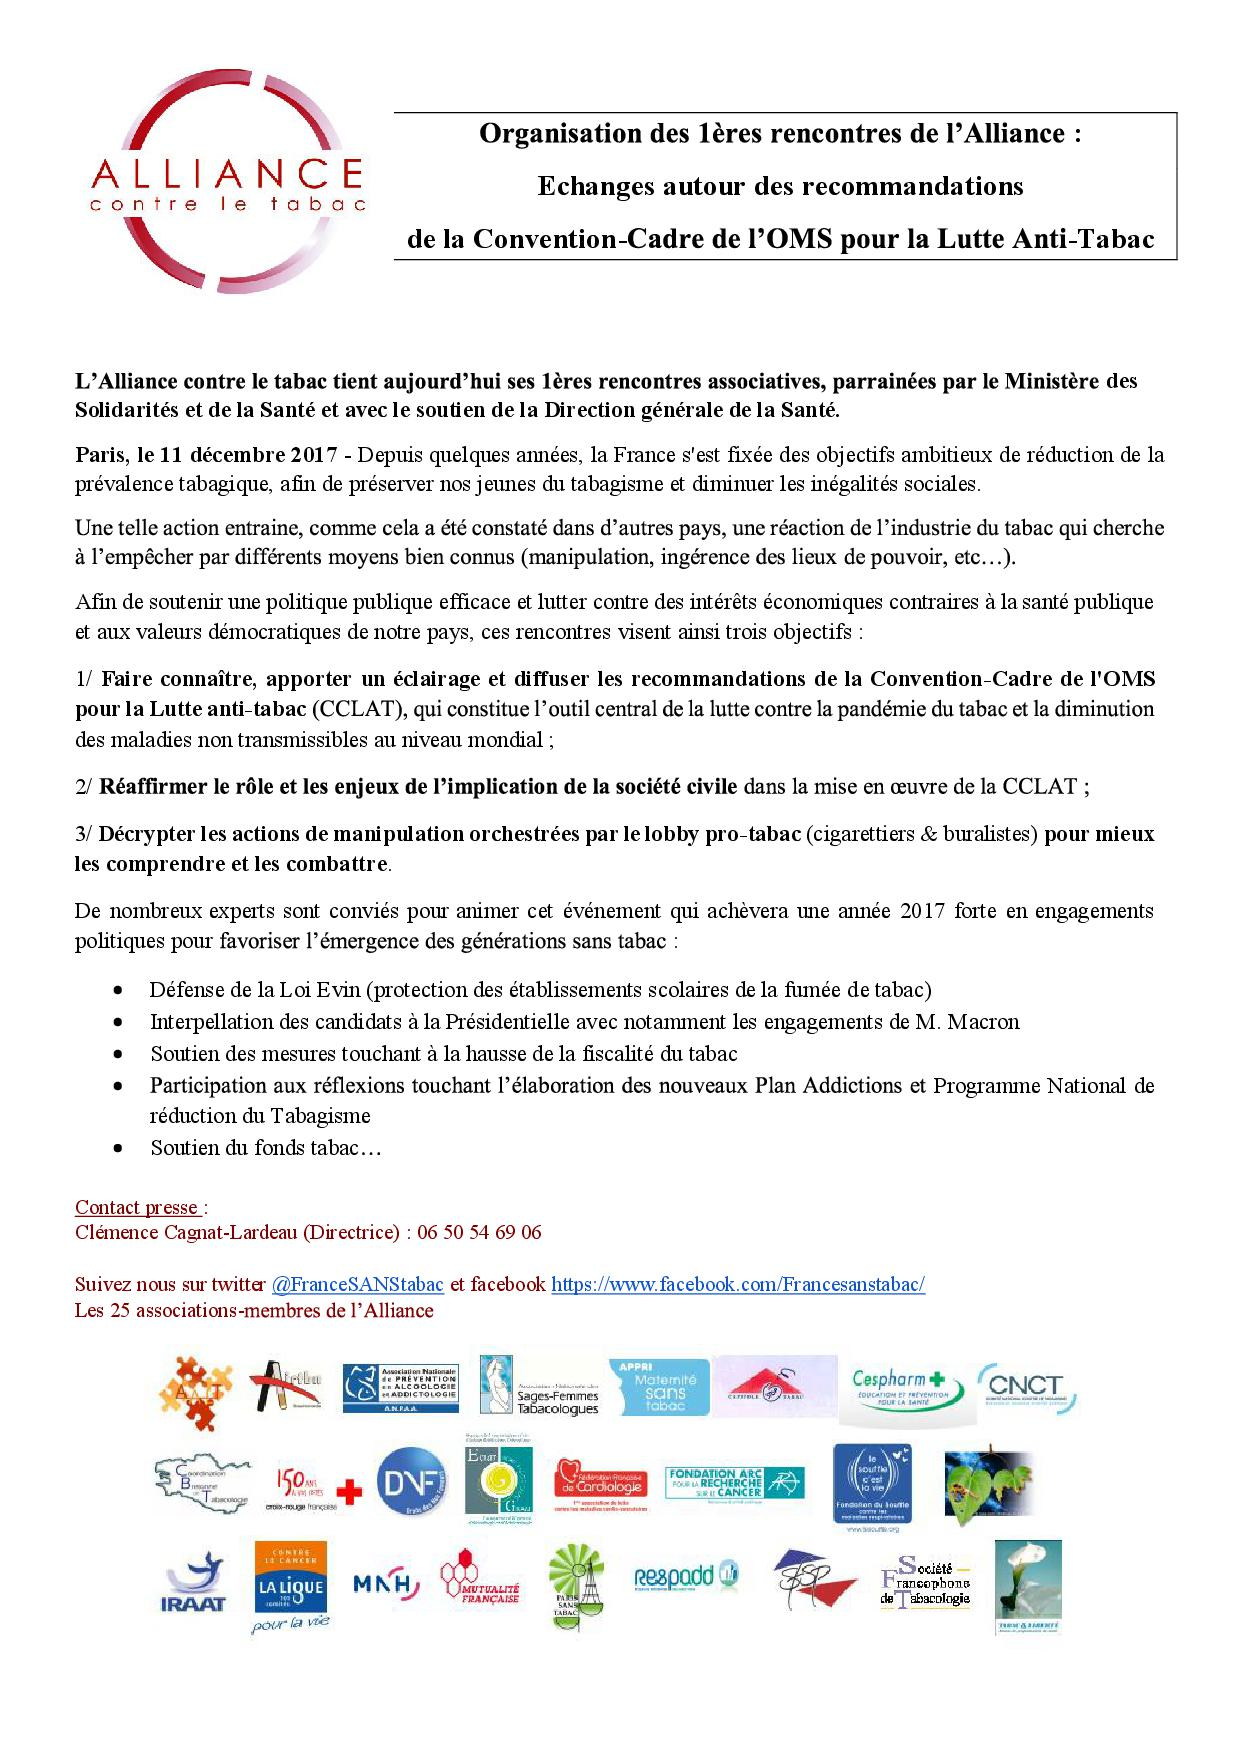 CP - 1ères rencontres ACT - 11122017 - VF.jpg